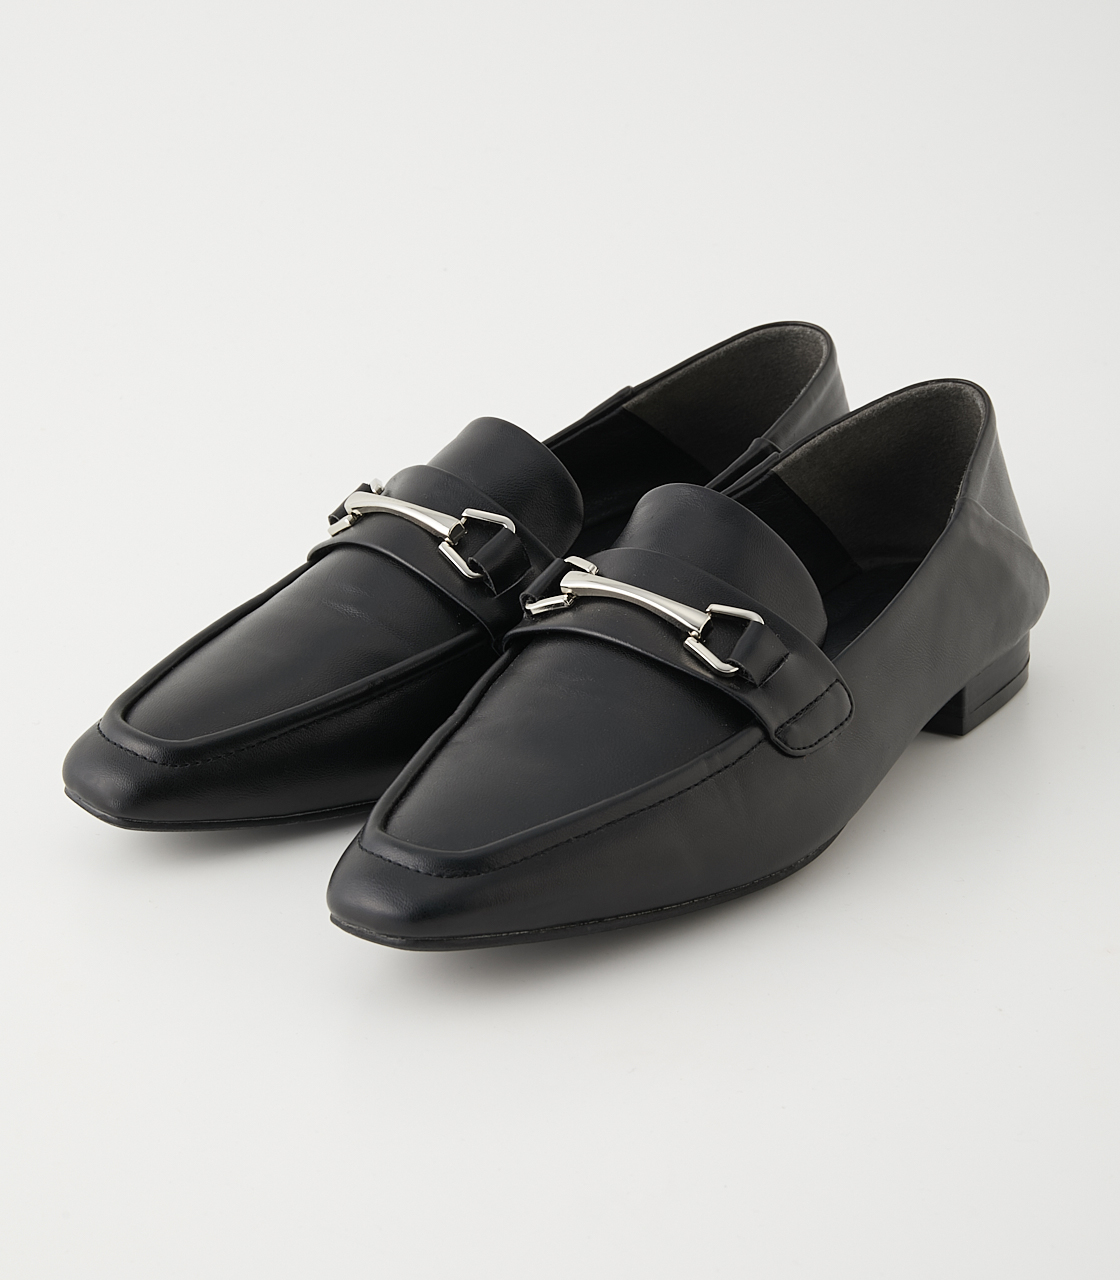 BABOUCHE LOAFER/バブーシュローファー 詳細画像 BLK 2